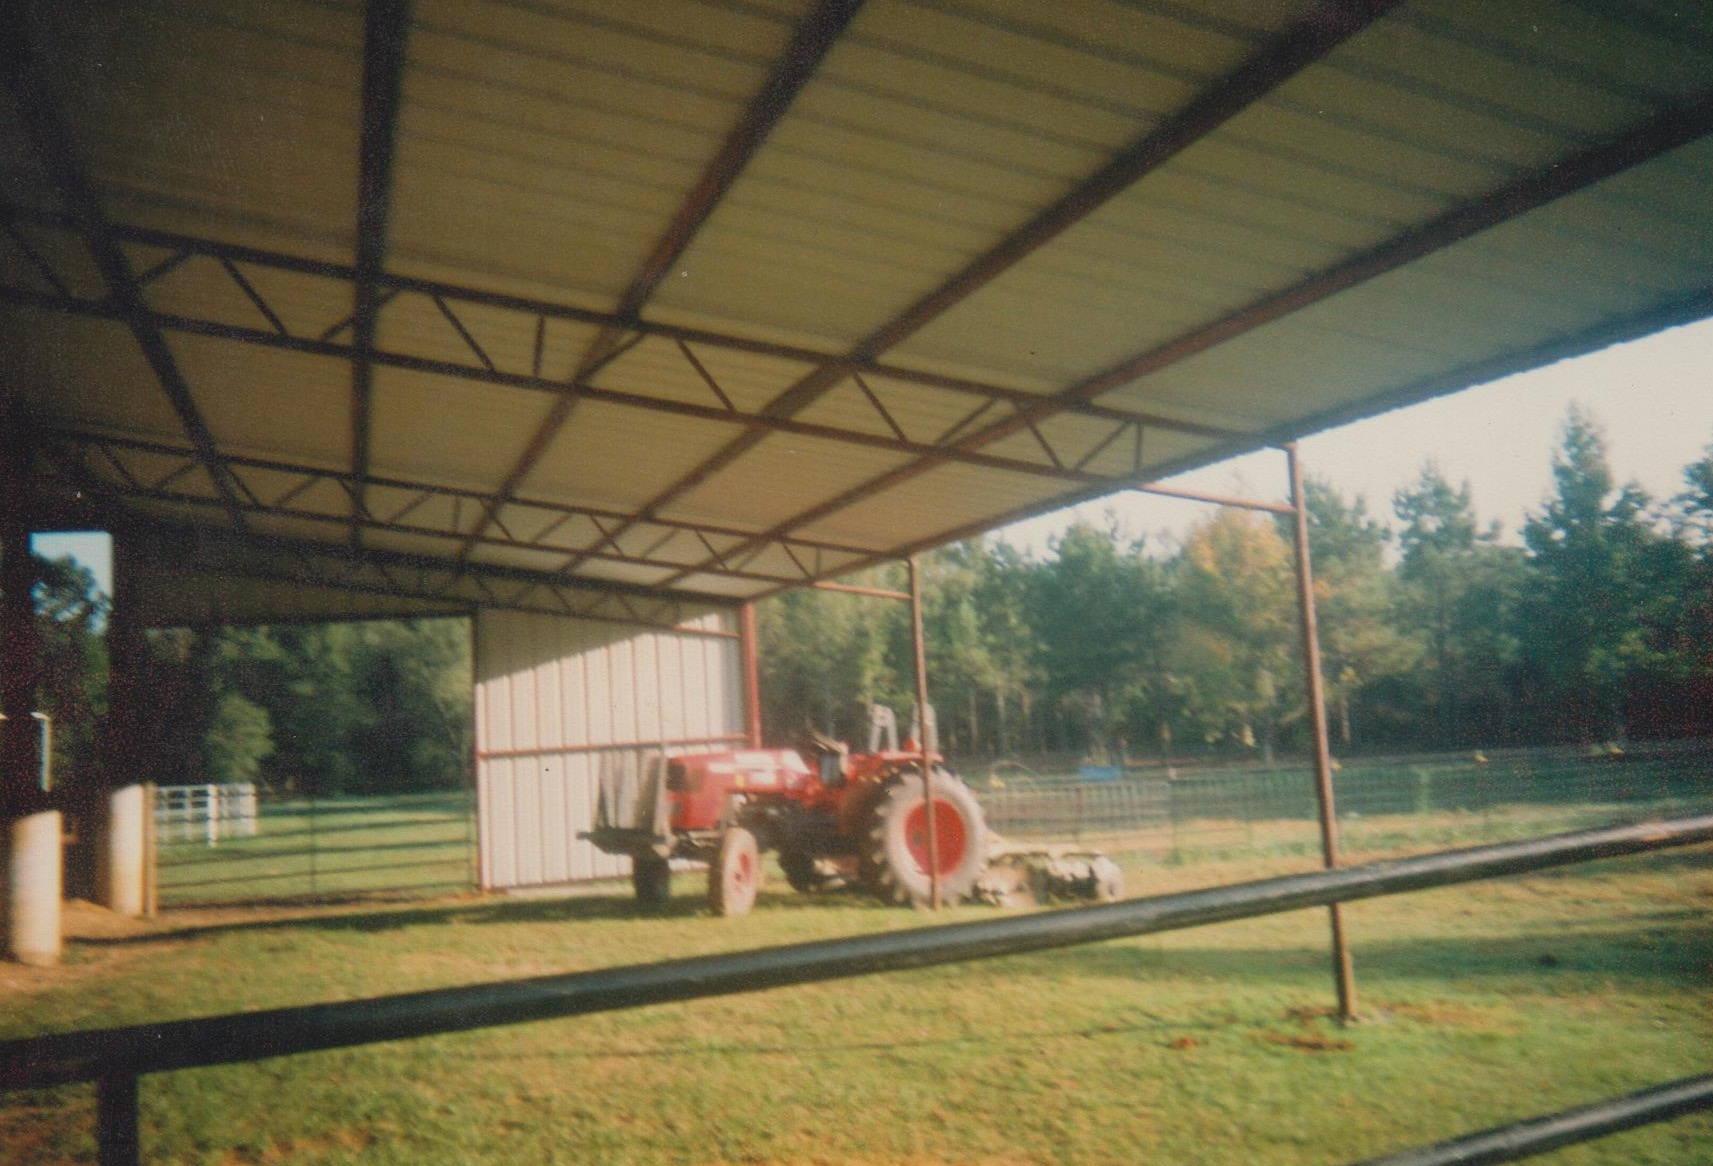 The Pipe Shop Inc | Kentwood, LA 70444 > Products > Pole Barns